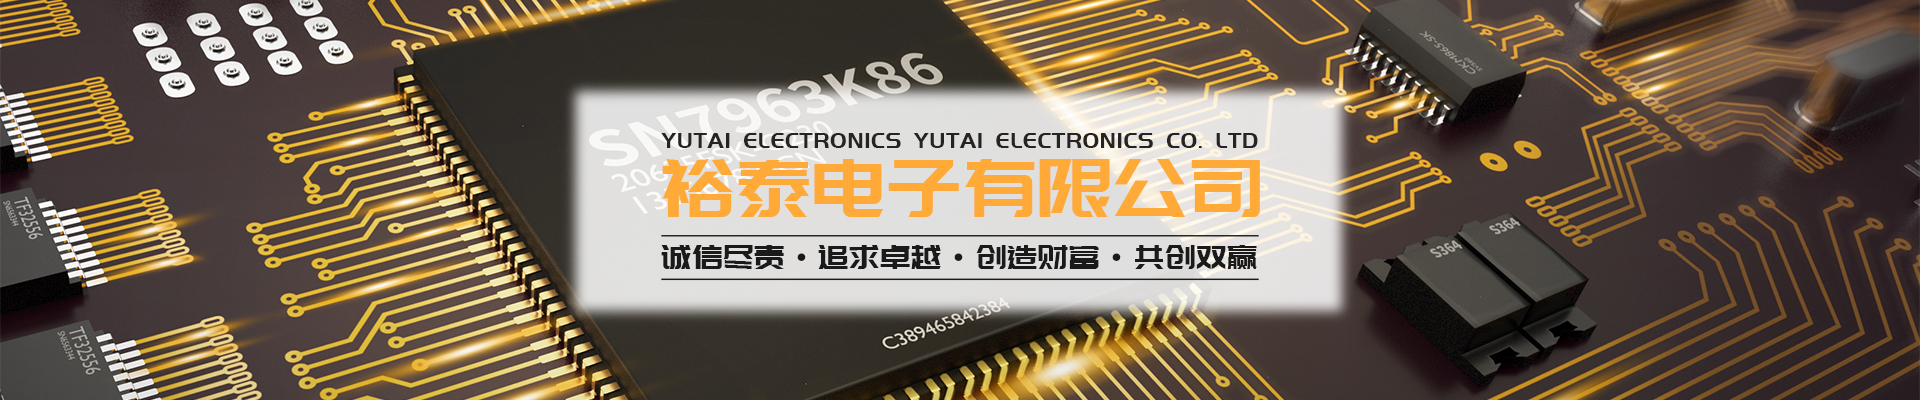 http://www.yutai-elec.com/data/upload/202004/20200409091636_315.jpg